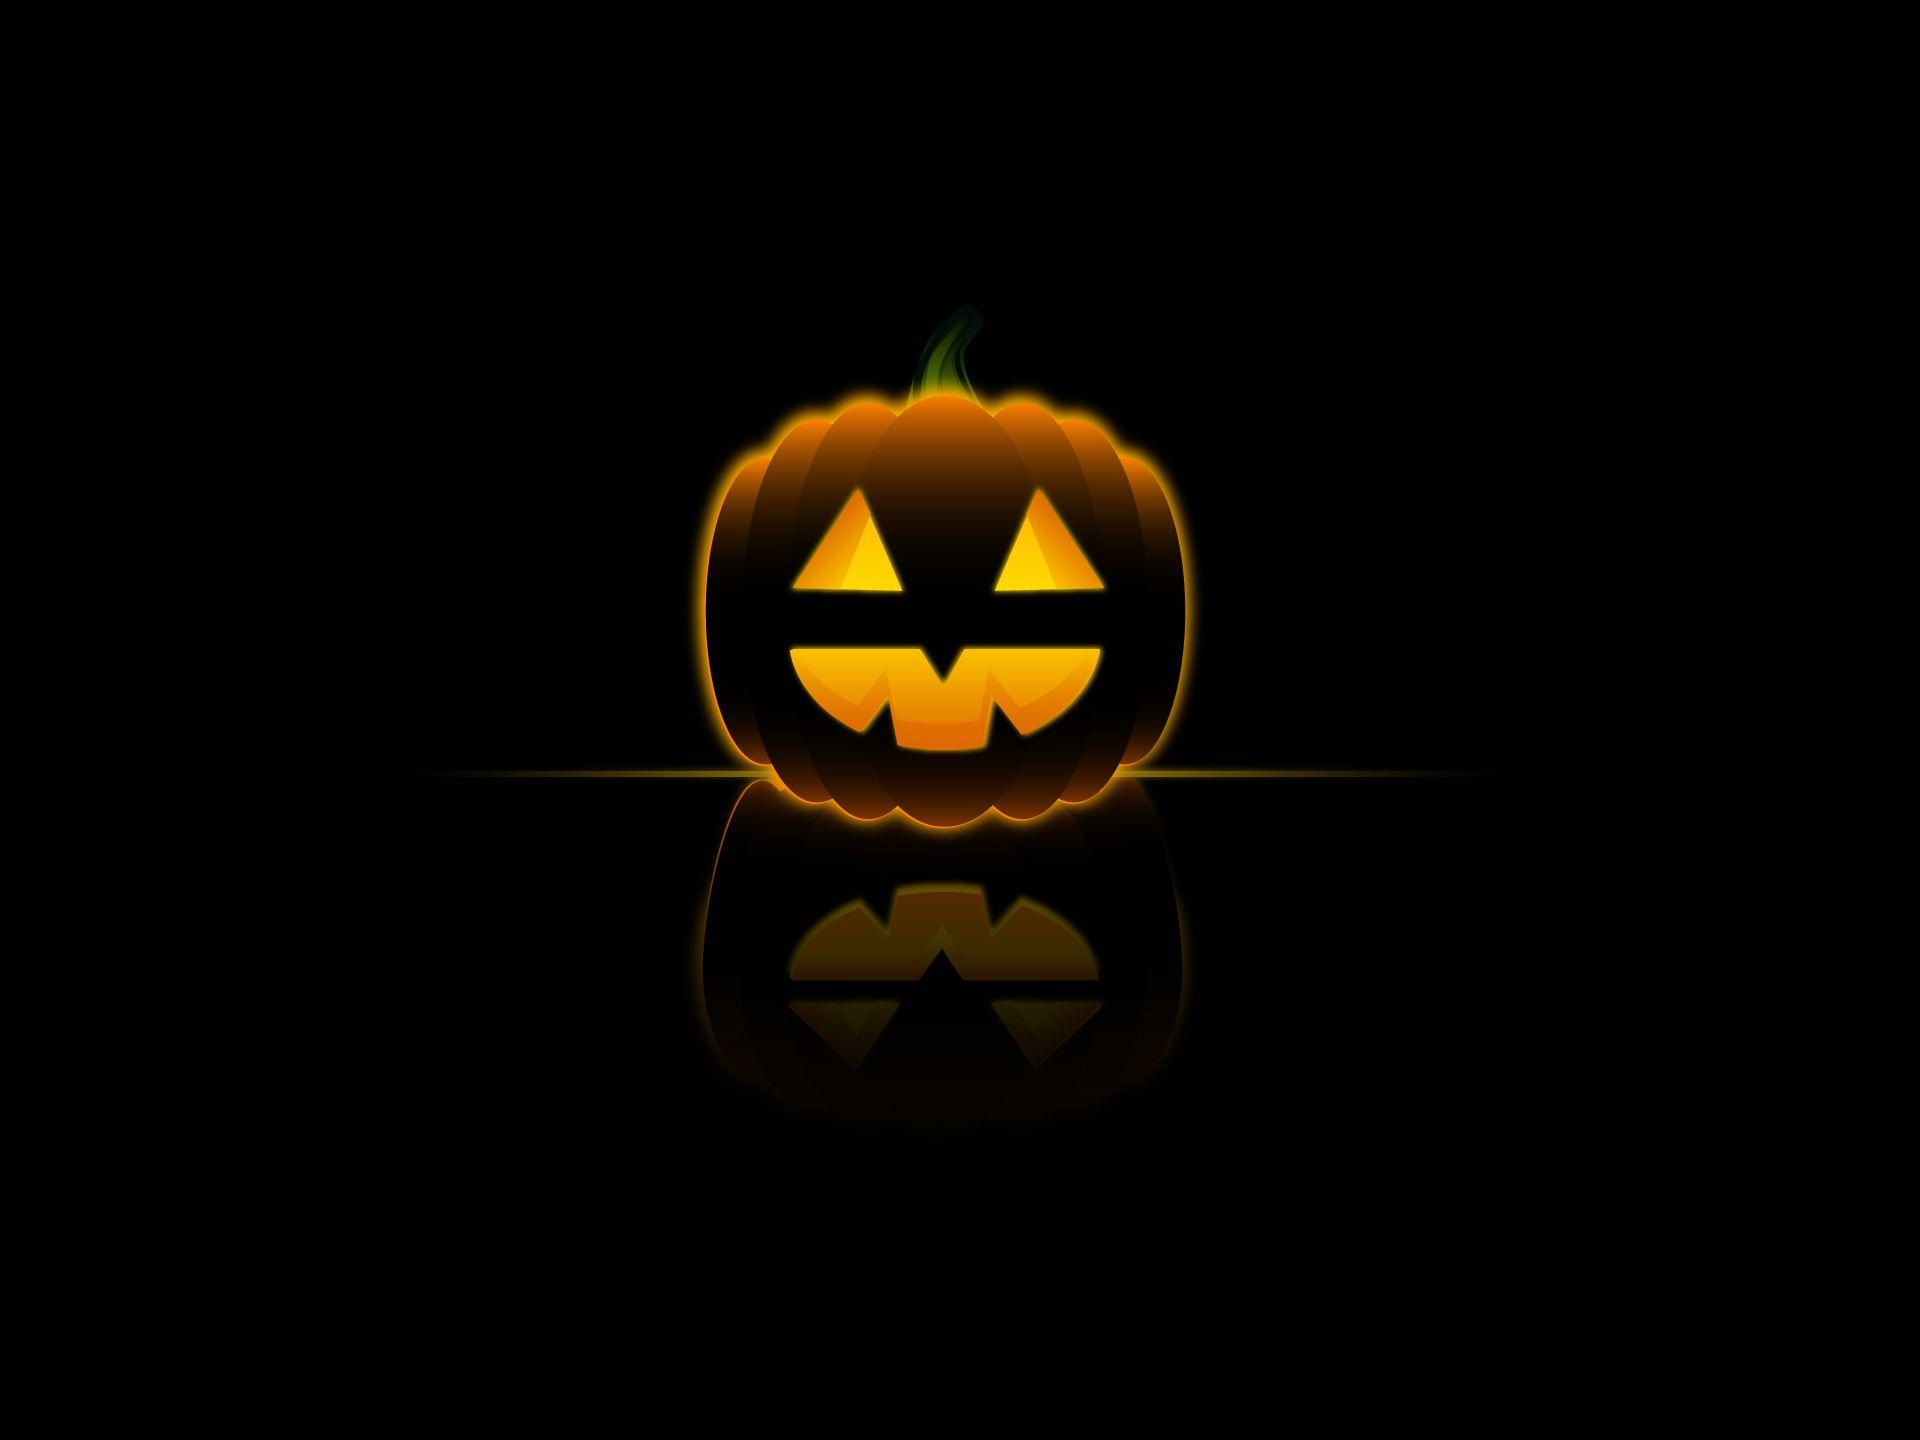 Wallpapers For > Halloween Pumpkin Backgrounds Desktop